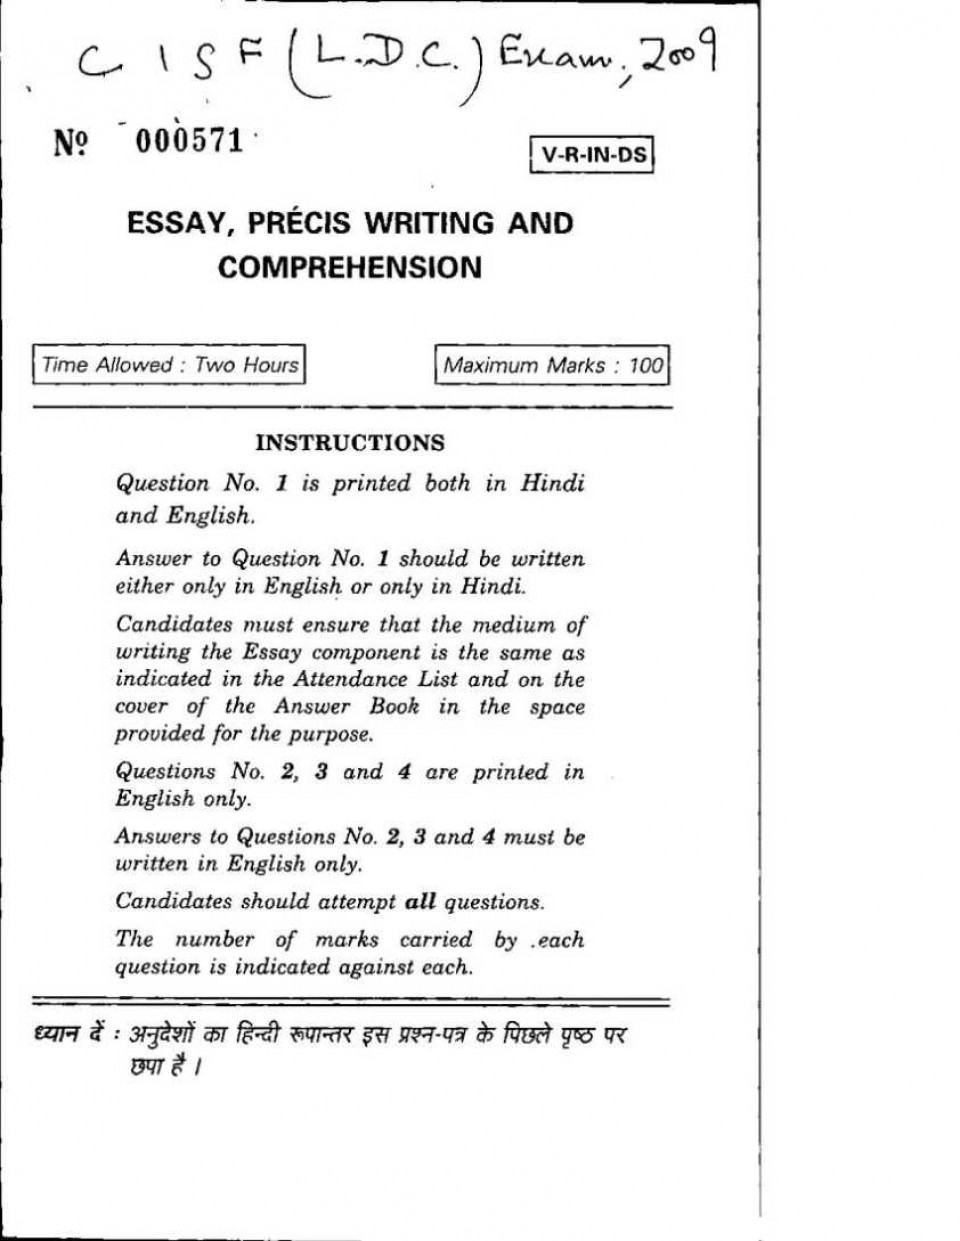 008 Essay Example Upsc Cisf Ltd Departmental Competitive Exam Precis Writing And Comprehension Previous Years Question Papers Stirring Introduction Examples About Yourself Mla Leadership College 960